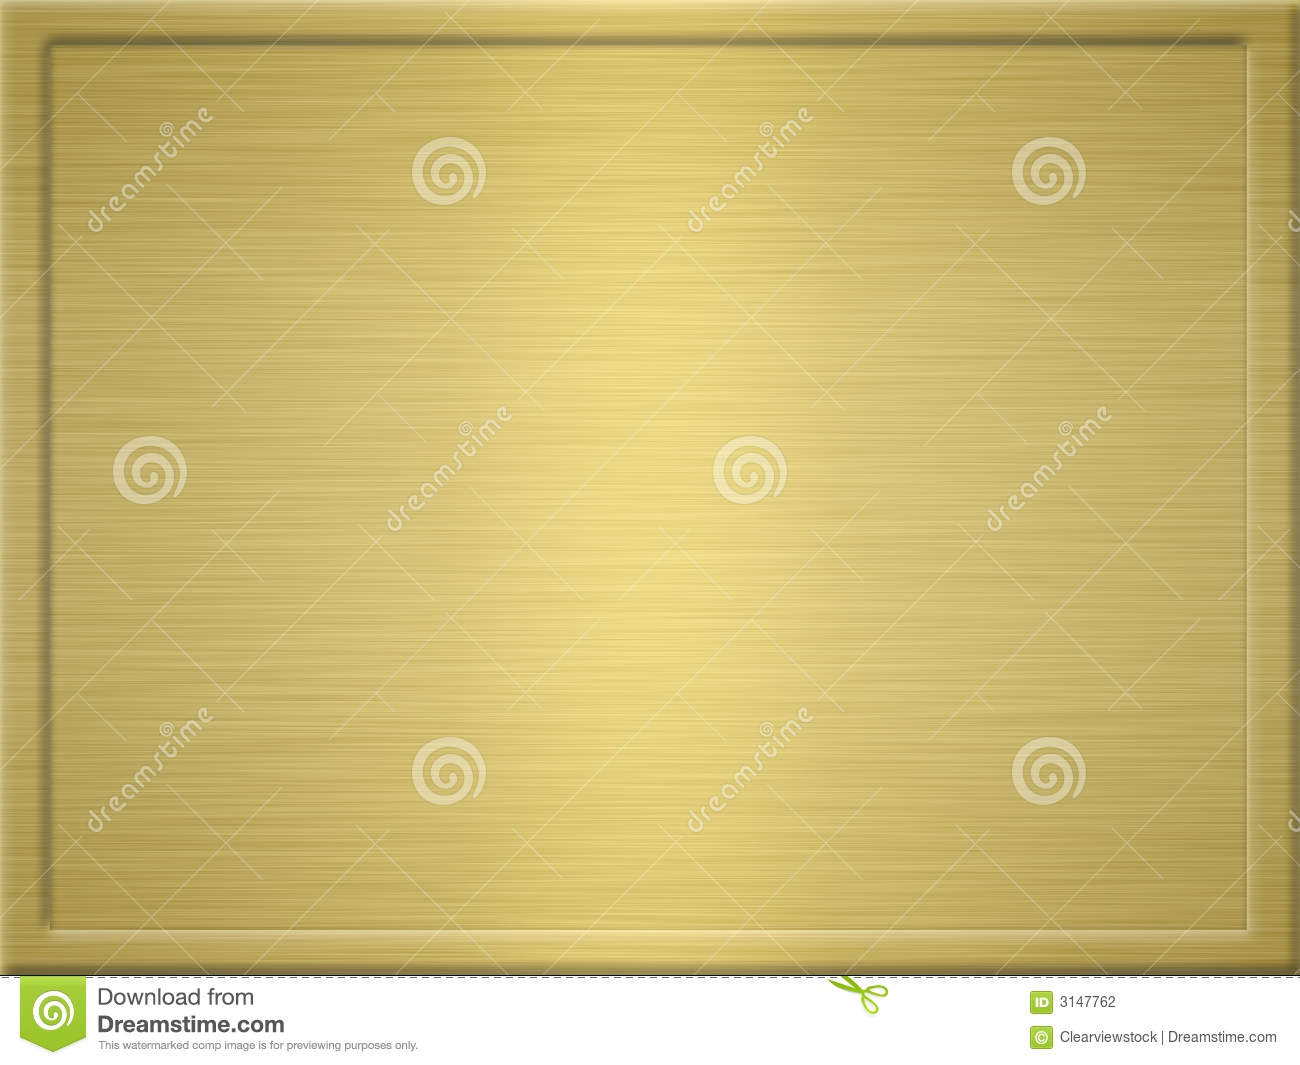 Brushed gold metal plaque